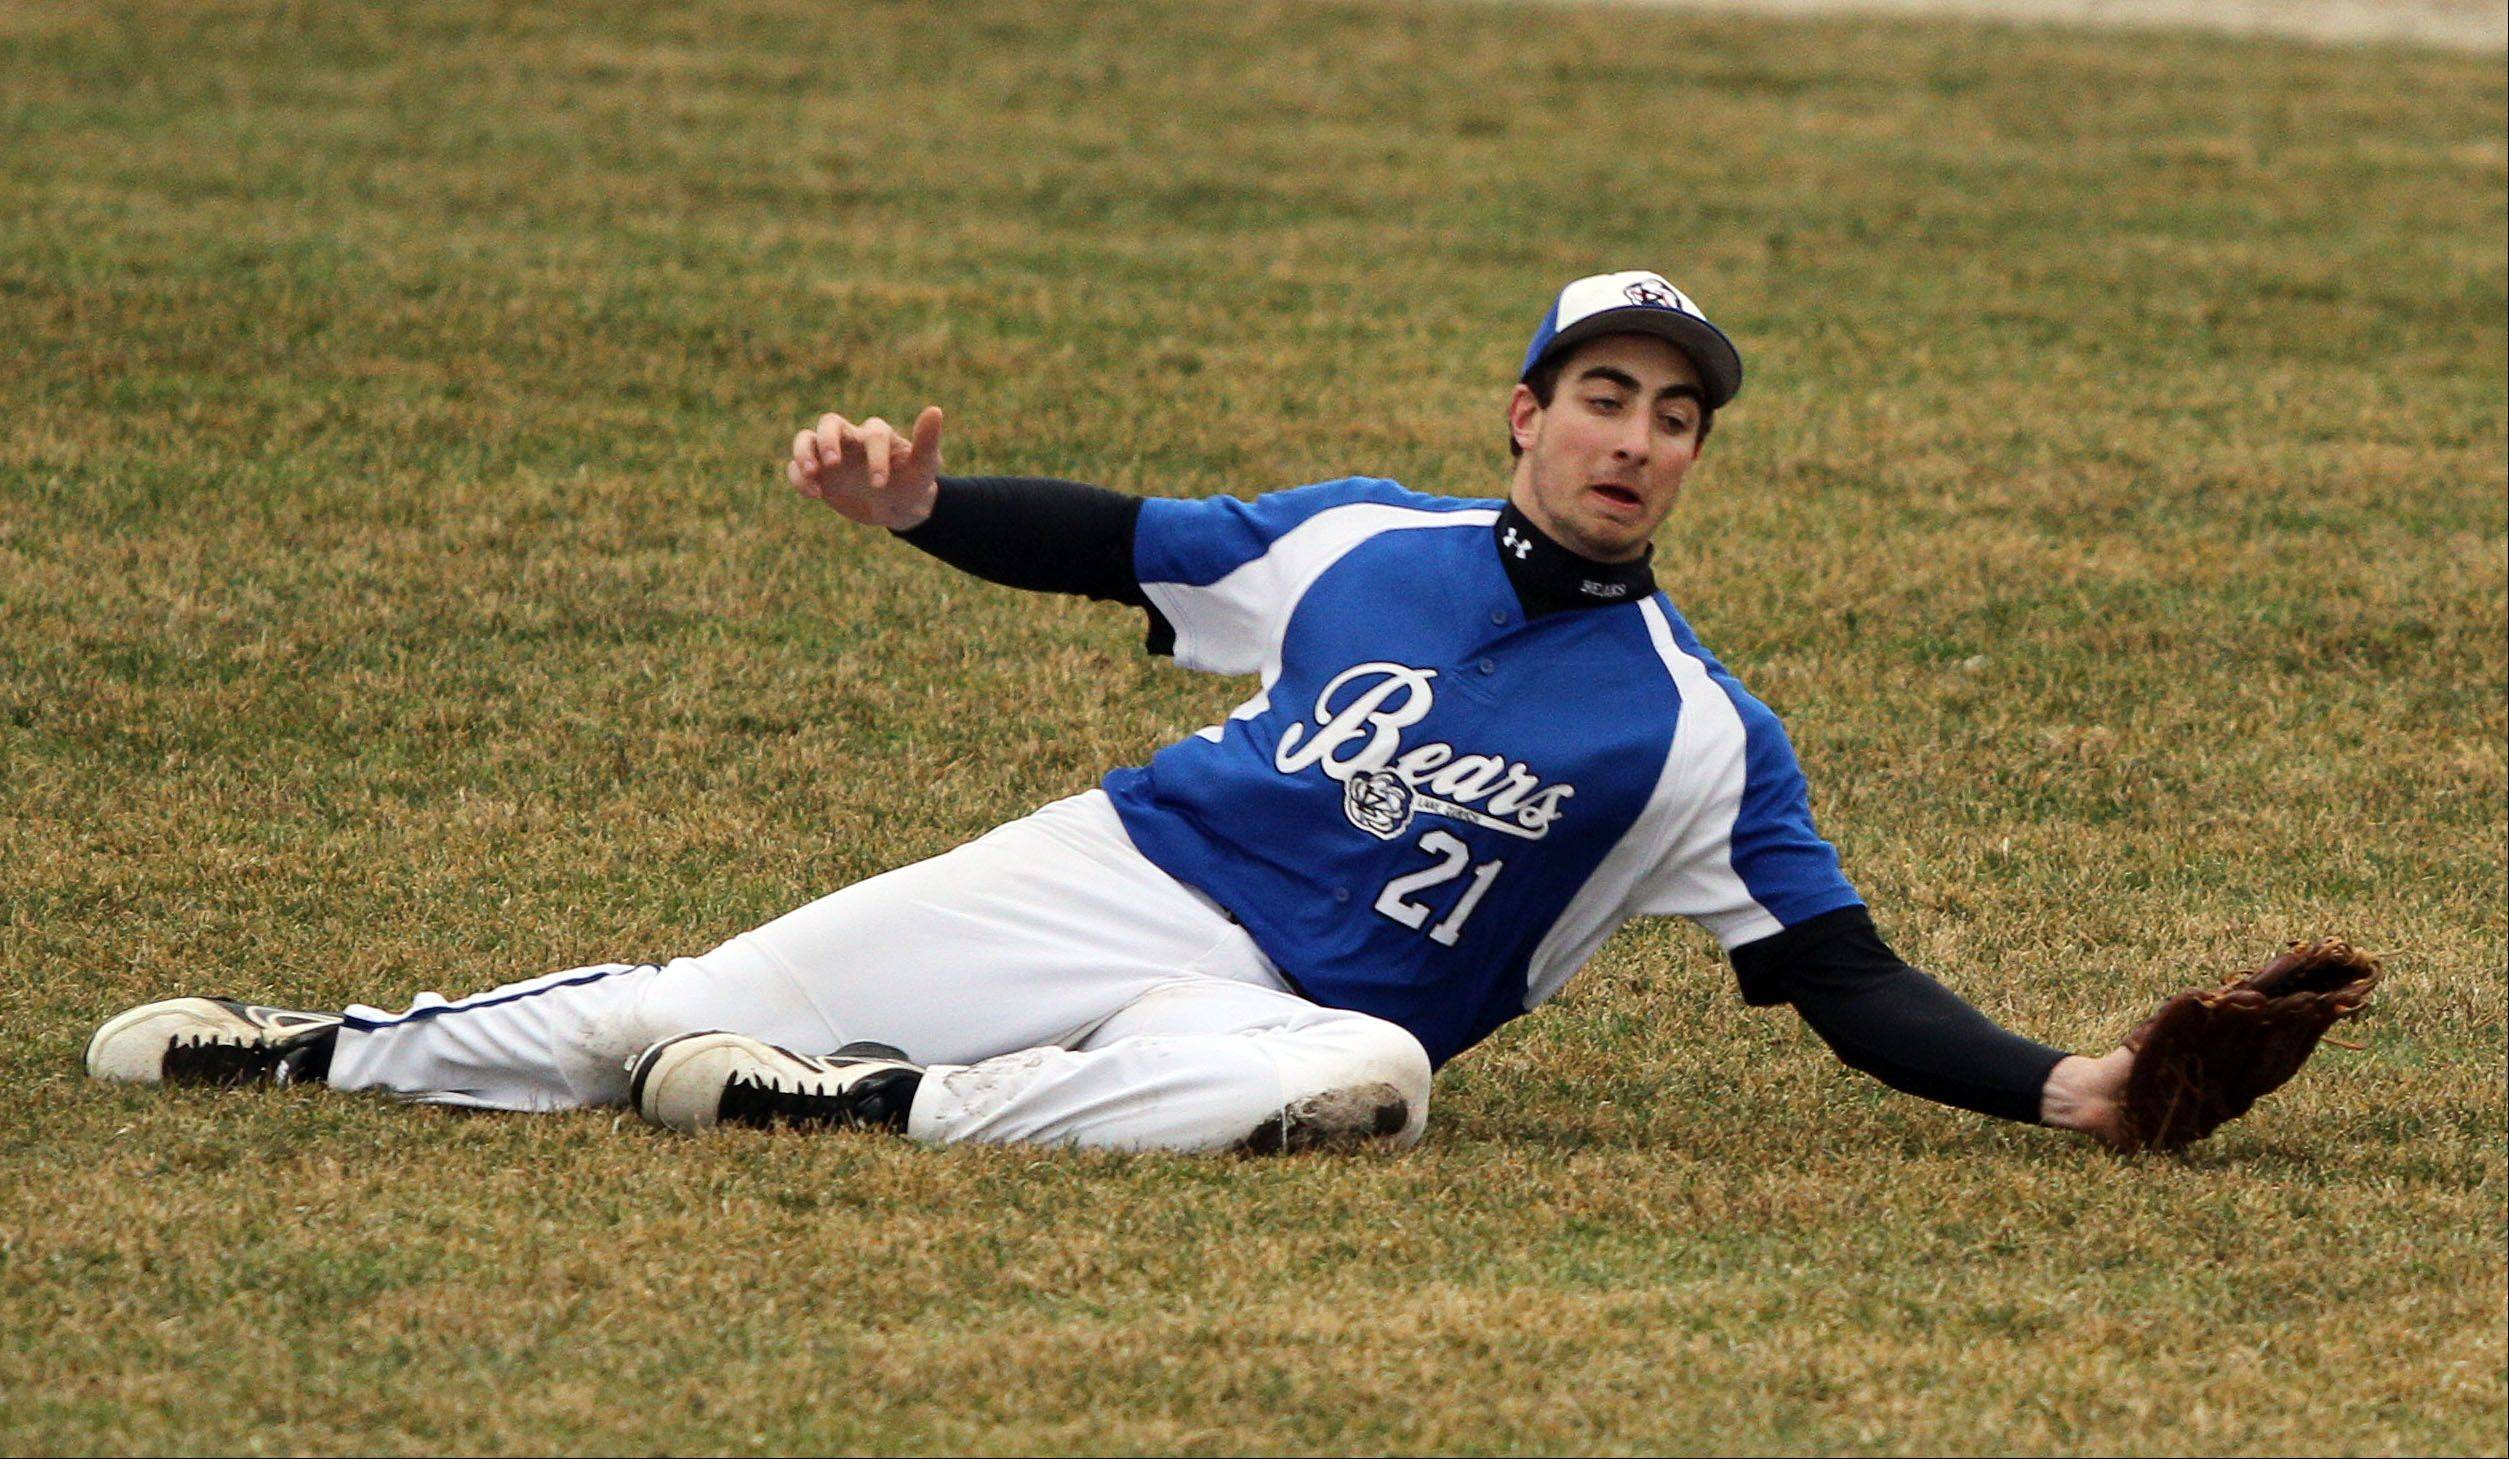 Lake Zurich's Dominic DeMicco makes a diving catch in the outfield during Tuesday's game at Mundelein High School.